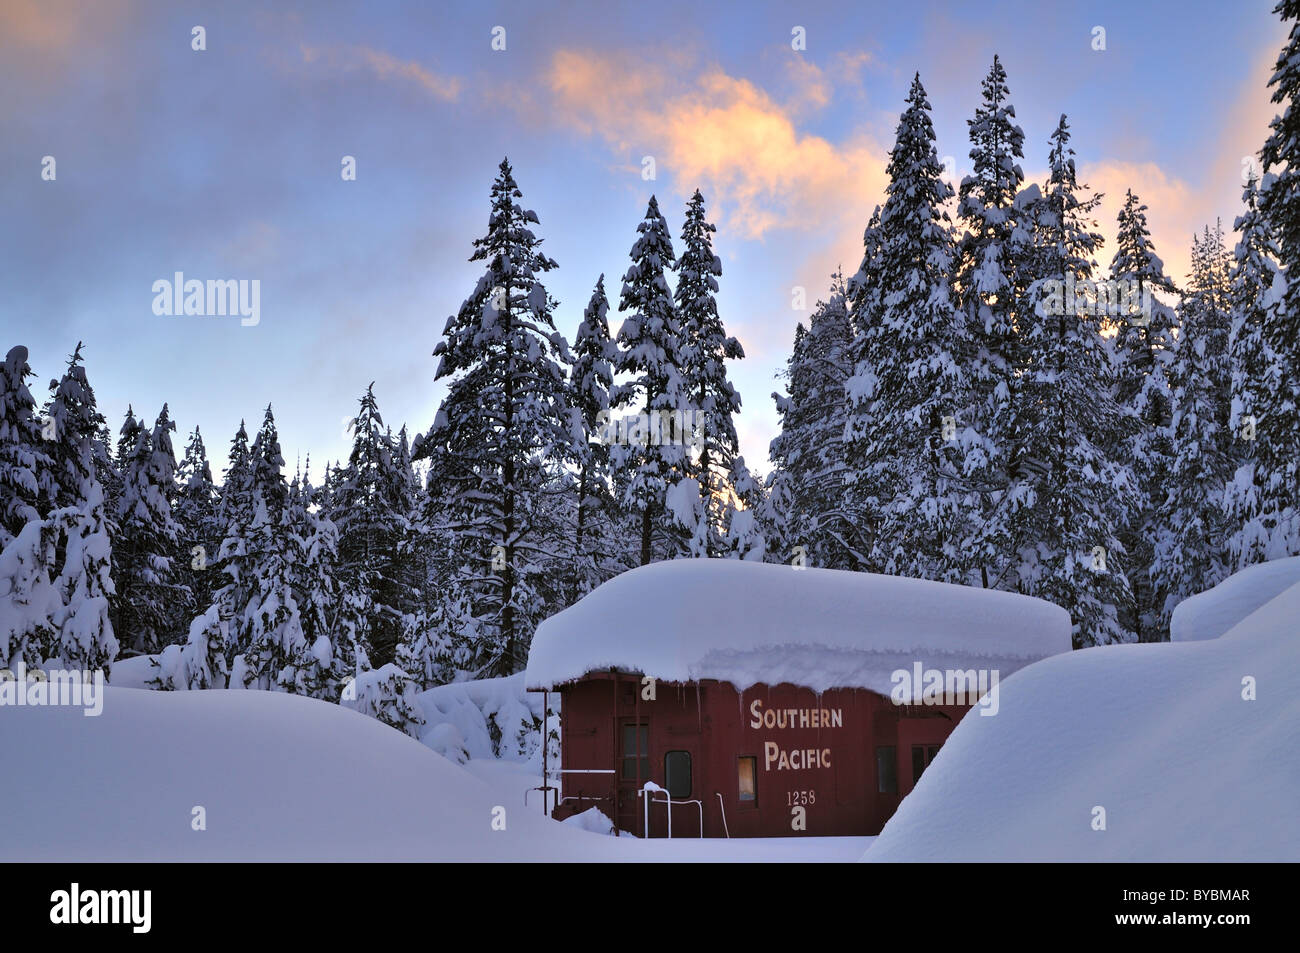 old railroad car in the snowy forest near Donner Summit - Stock Image